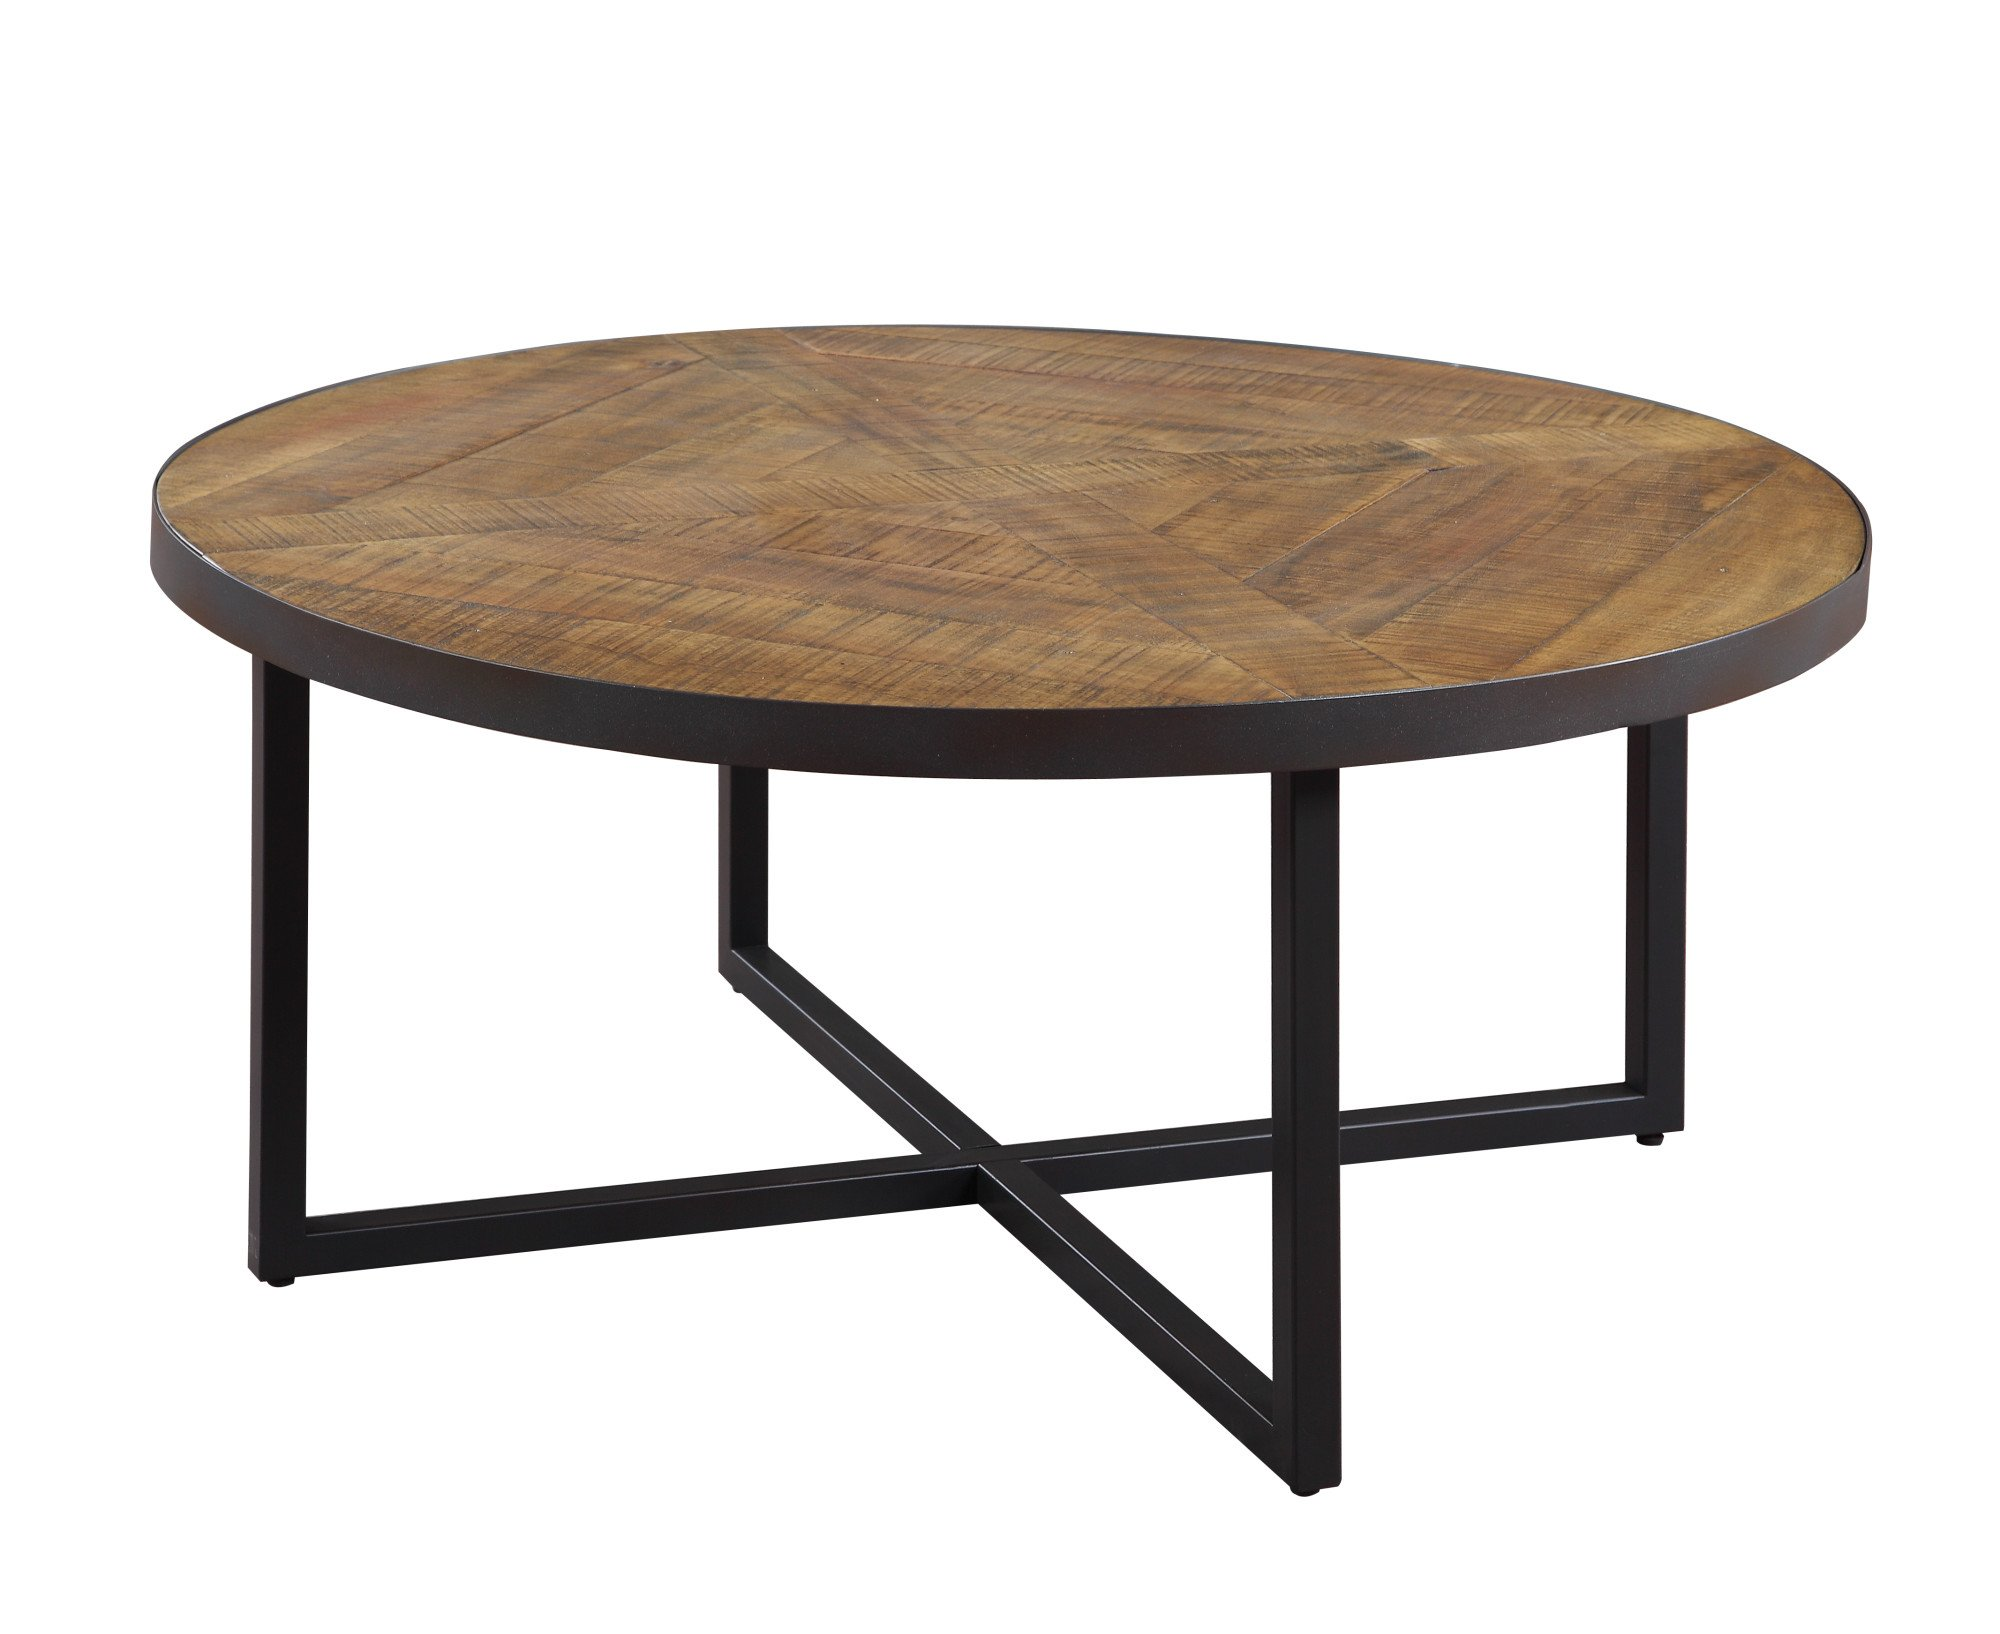 Emerald Home Denton Antique Pine Coffee Table with Round, Pieced Top And Metal Base by Emerald Home Furnishings